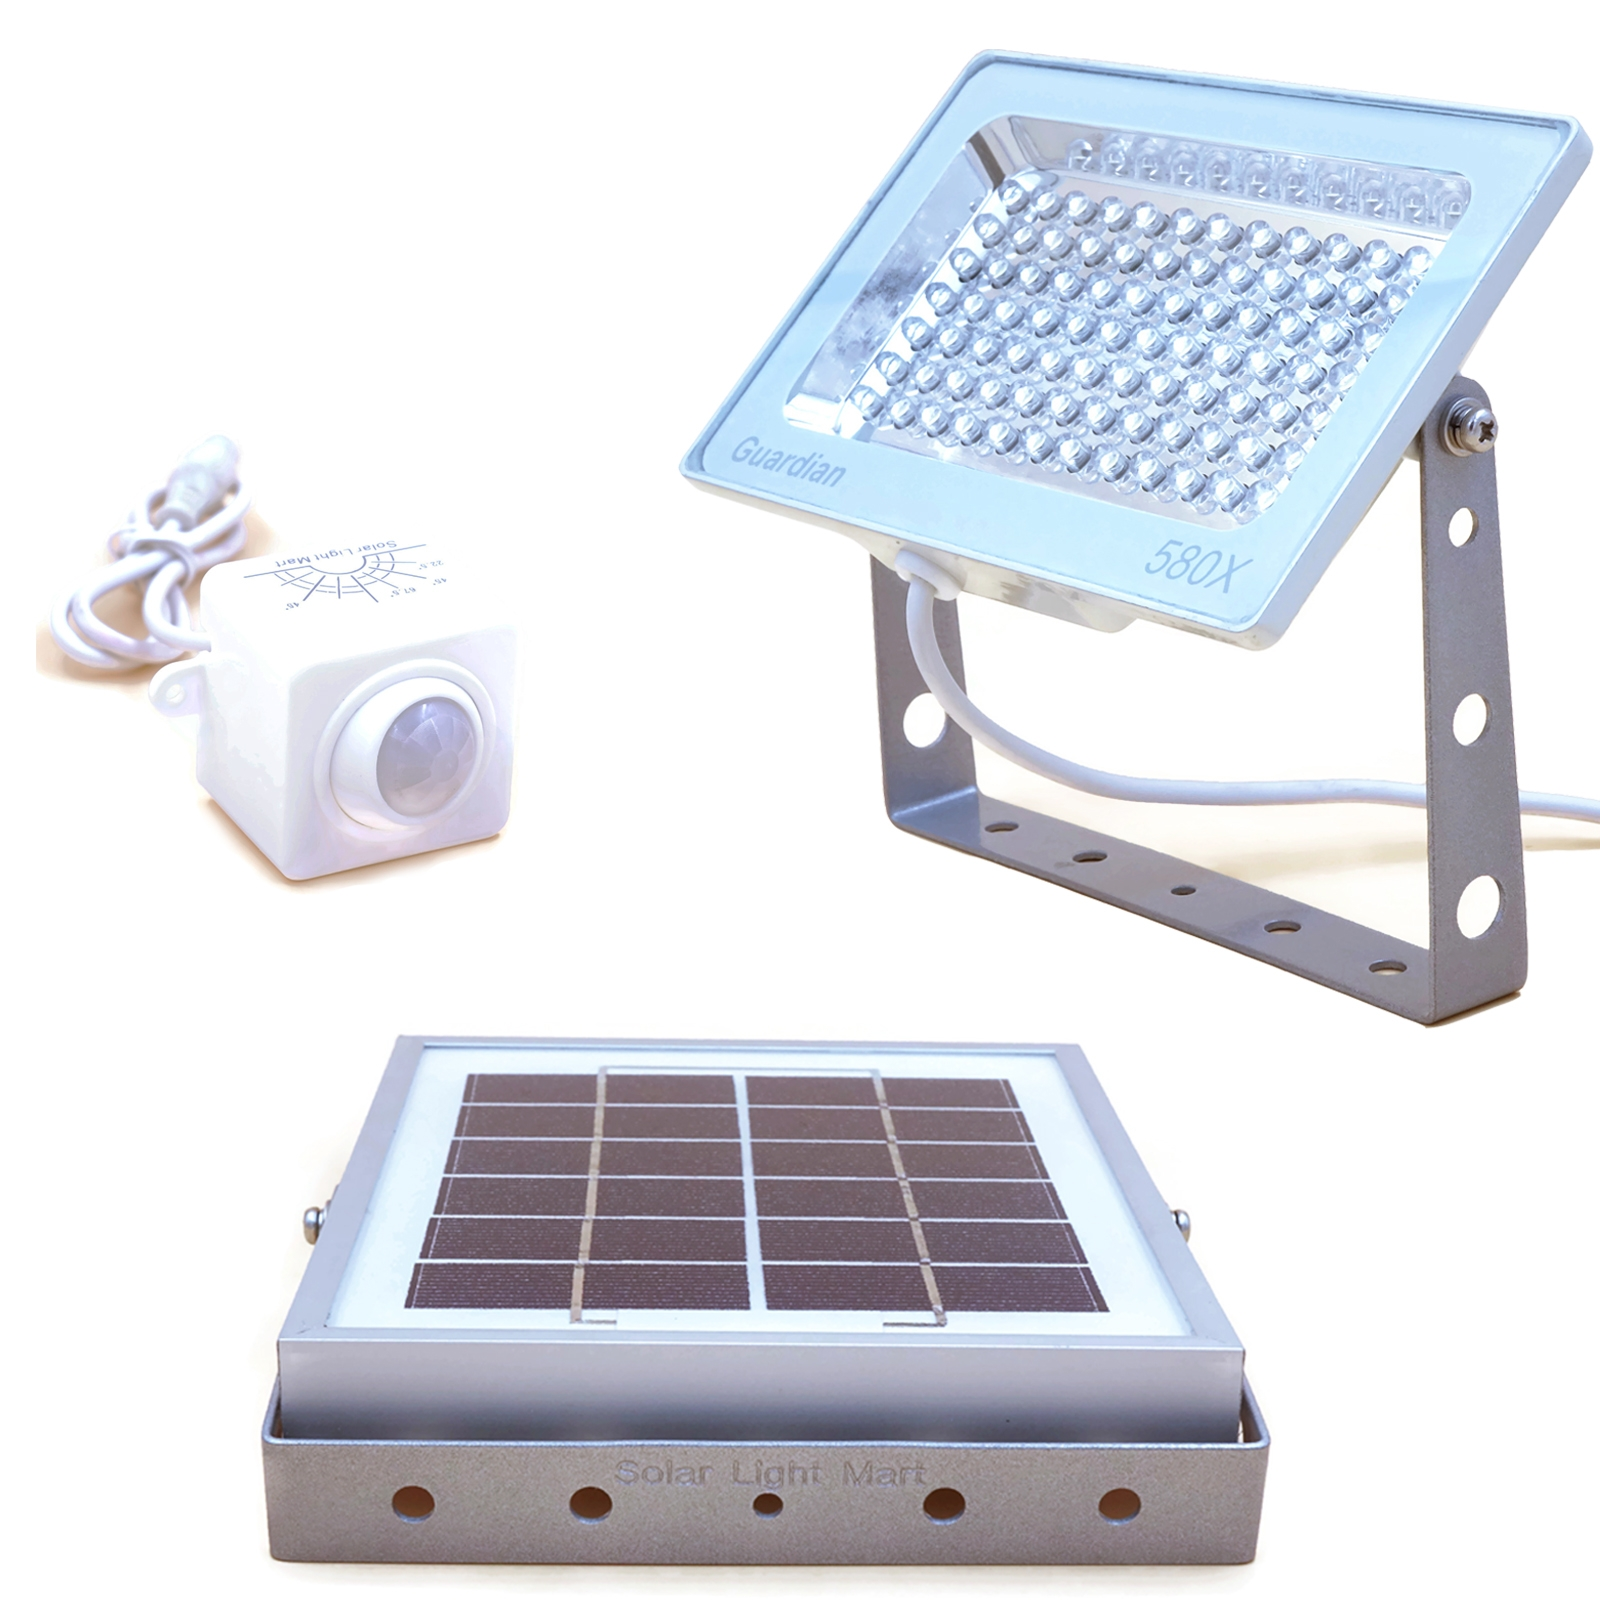 Solar Guardian Floodlight Park Lighting Security Light Compound Flood Wiring Instructions Installing A Remote Motion Detector The Costs Of Trenching And Underground Often Make Street System An Economically Feasible Lower Cost Option